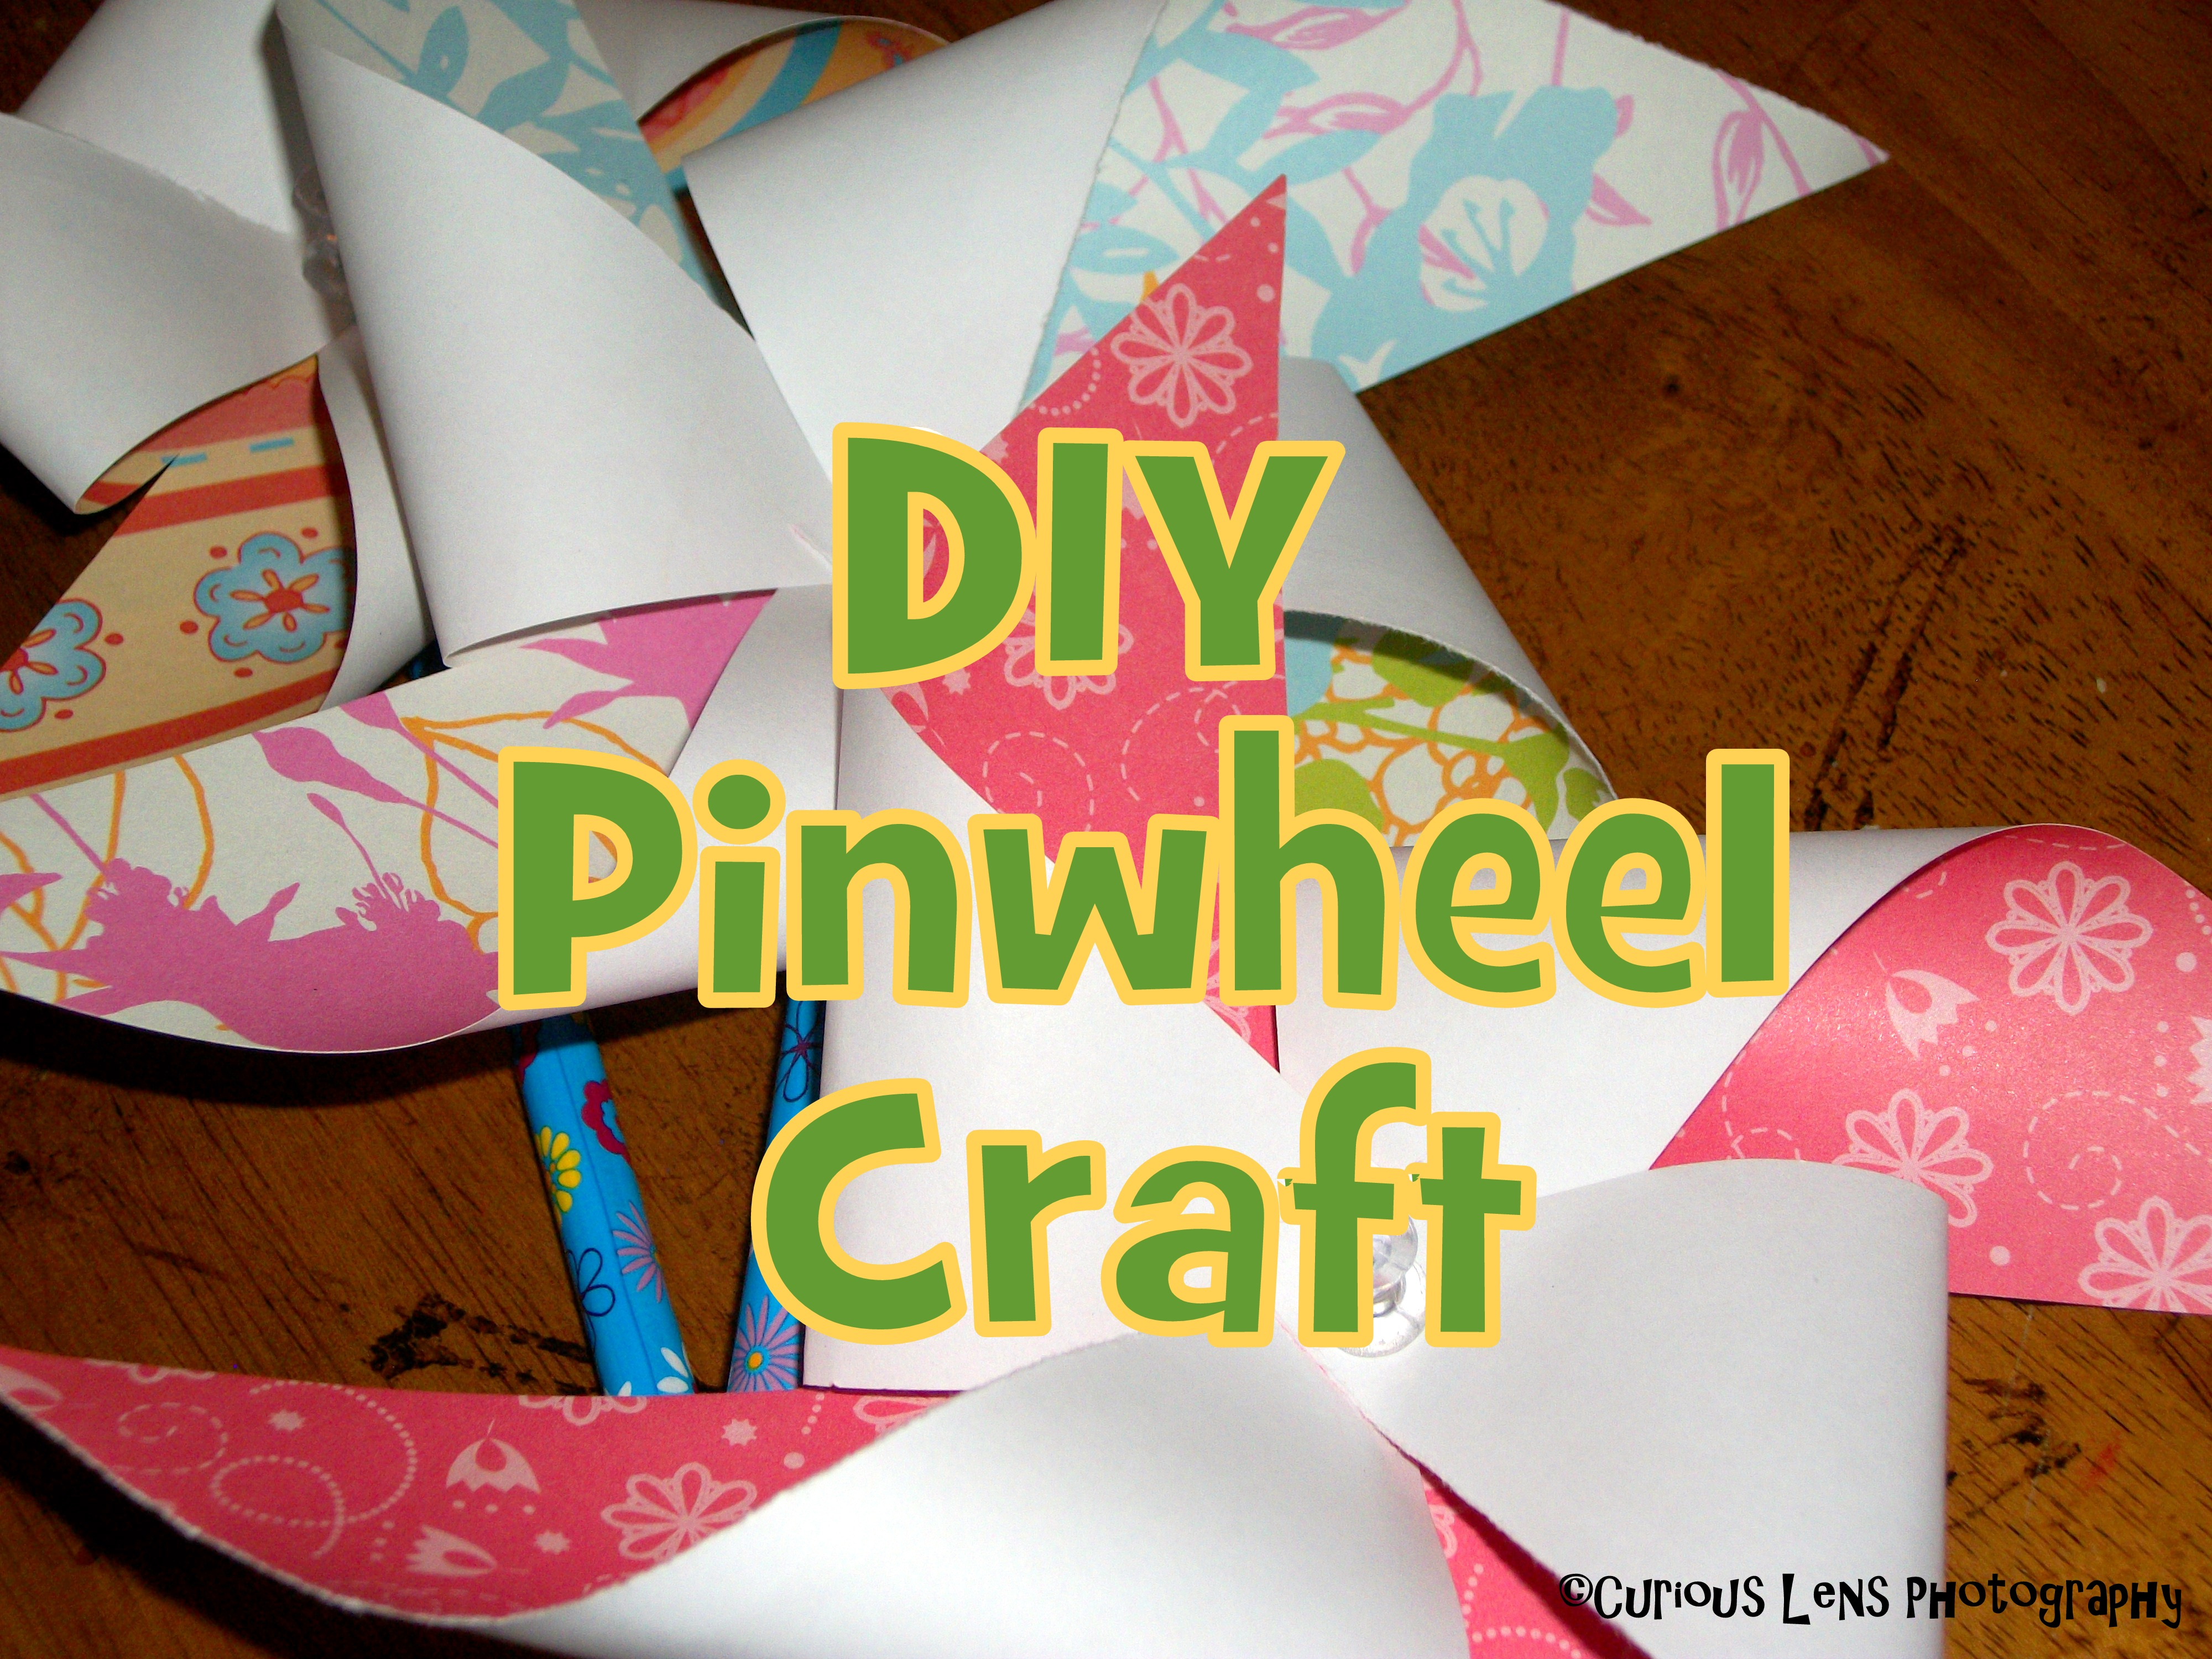 DIY Pinwheel Craft: Look! We're Learning!